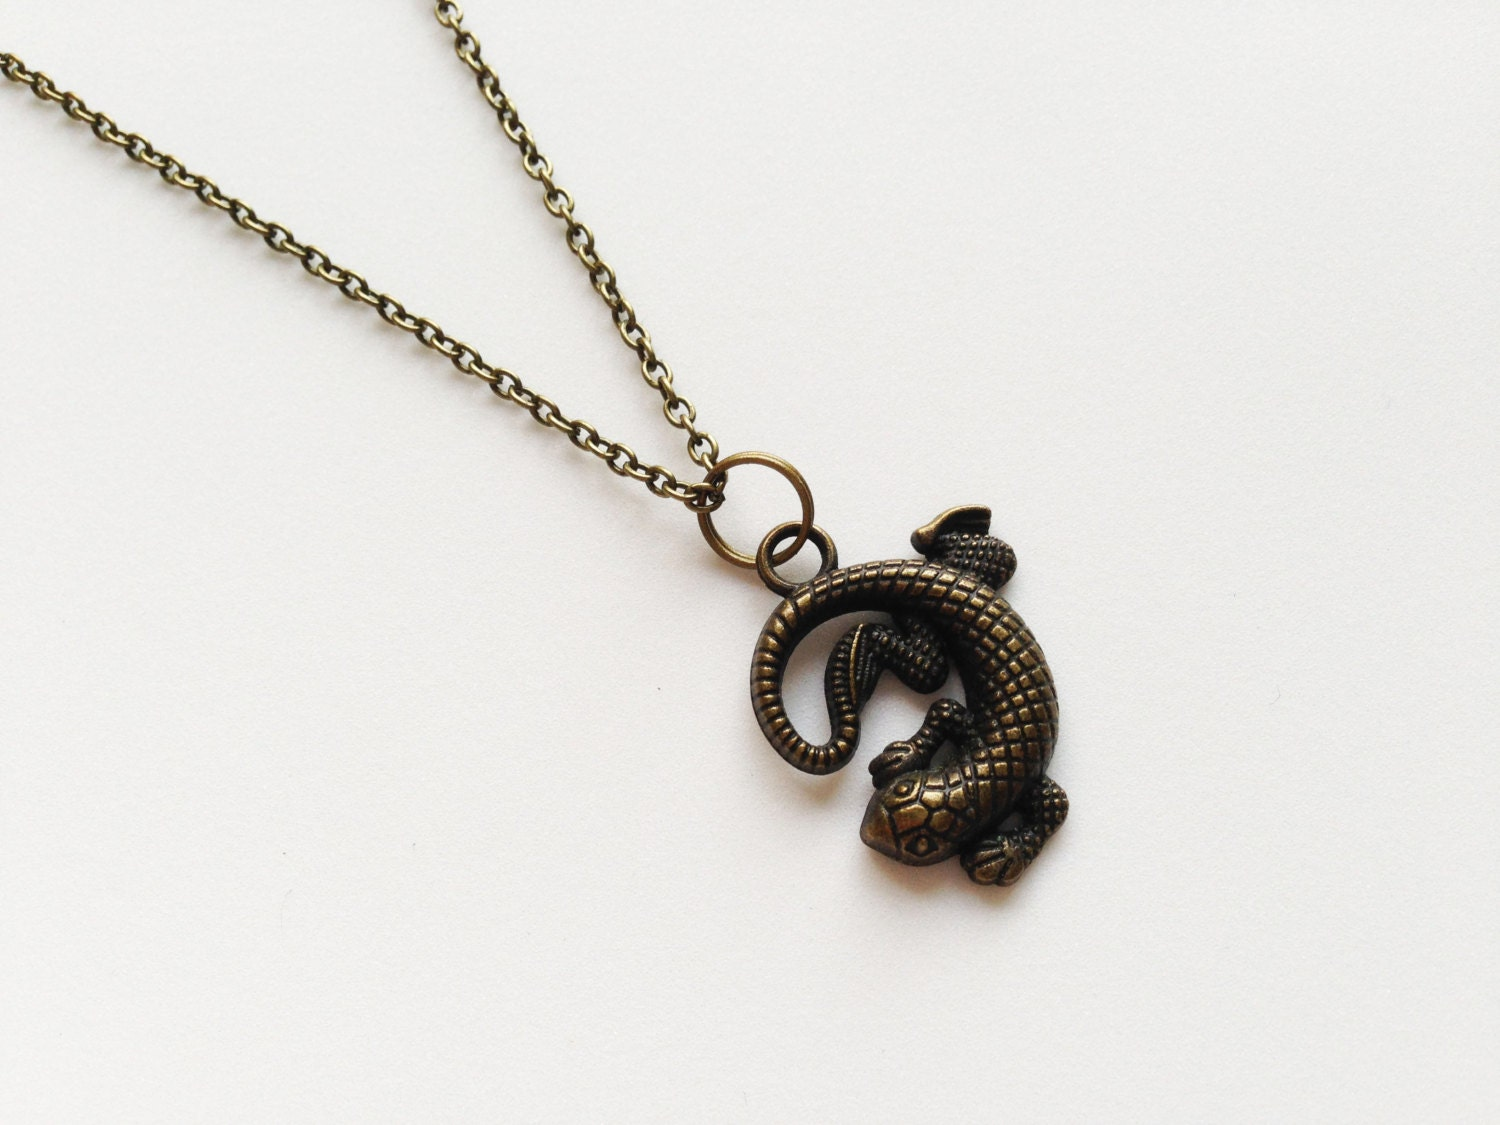 lizard necklace lizard pendant charm chain by zhuaccessories